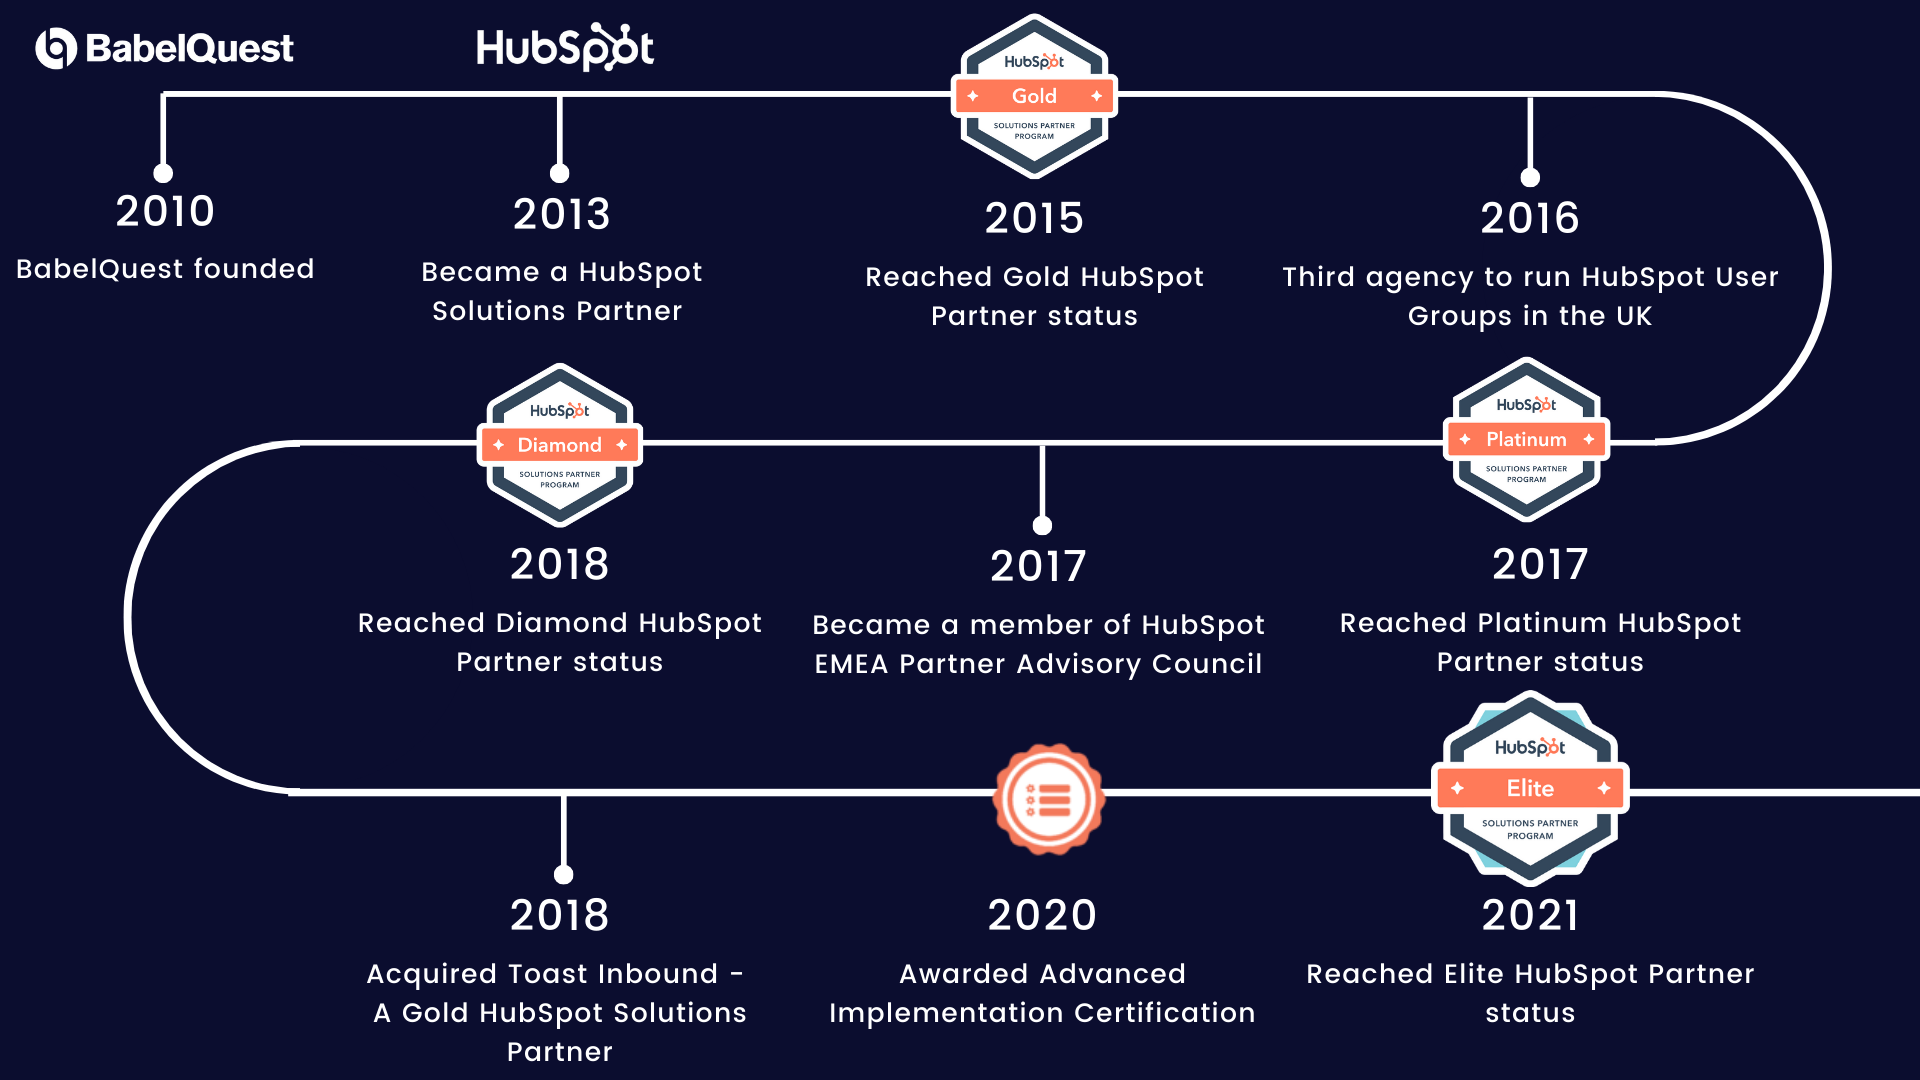 A timeline of BabelQuest and our achievements as a HubSpot Solutions Partner